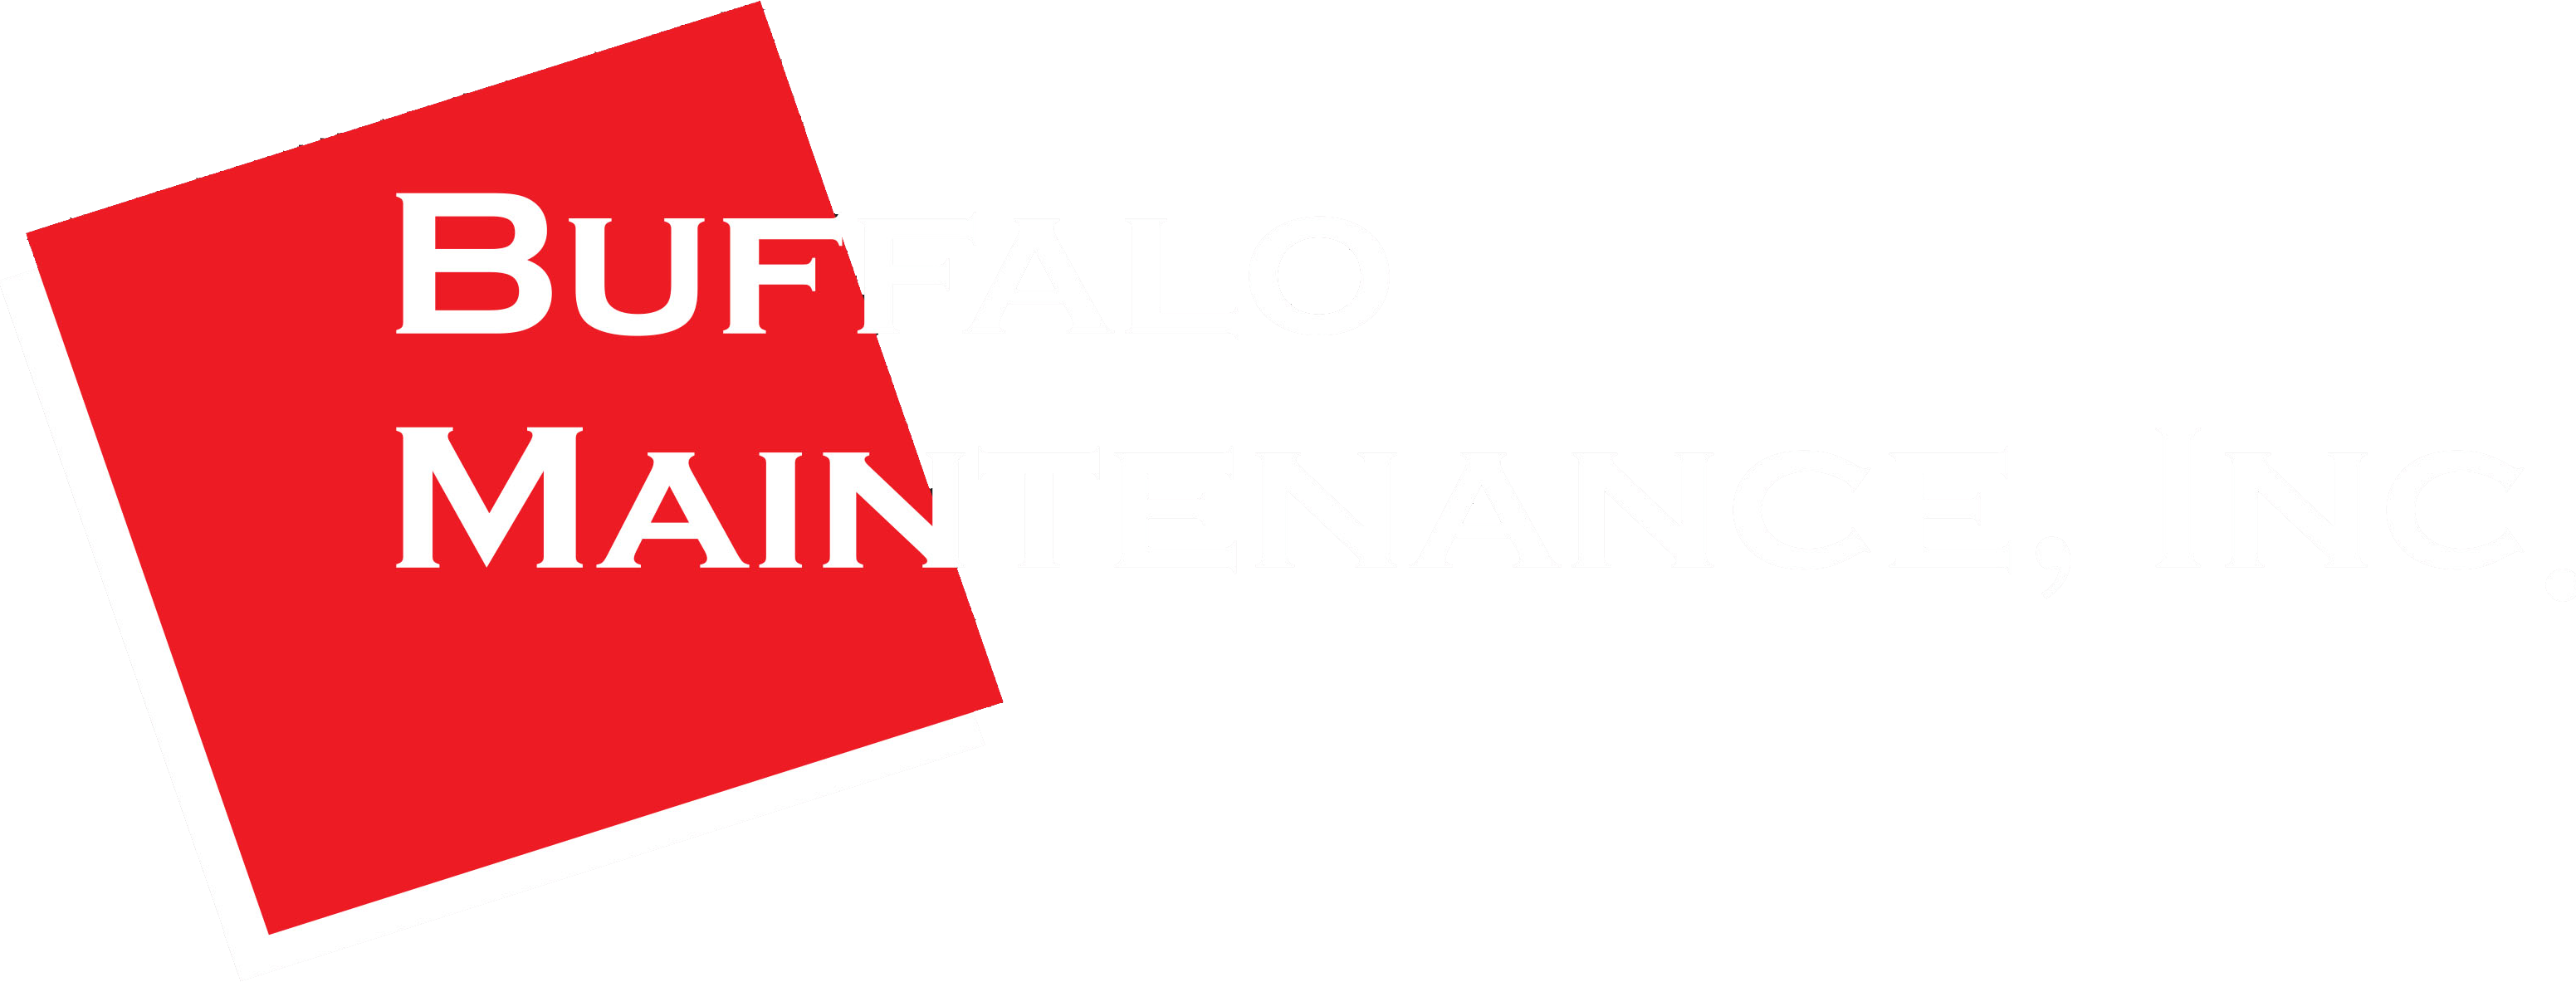 Buffalo Maintenance License #1010967